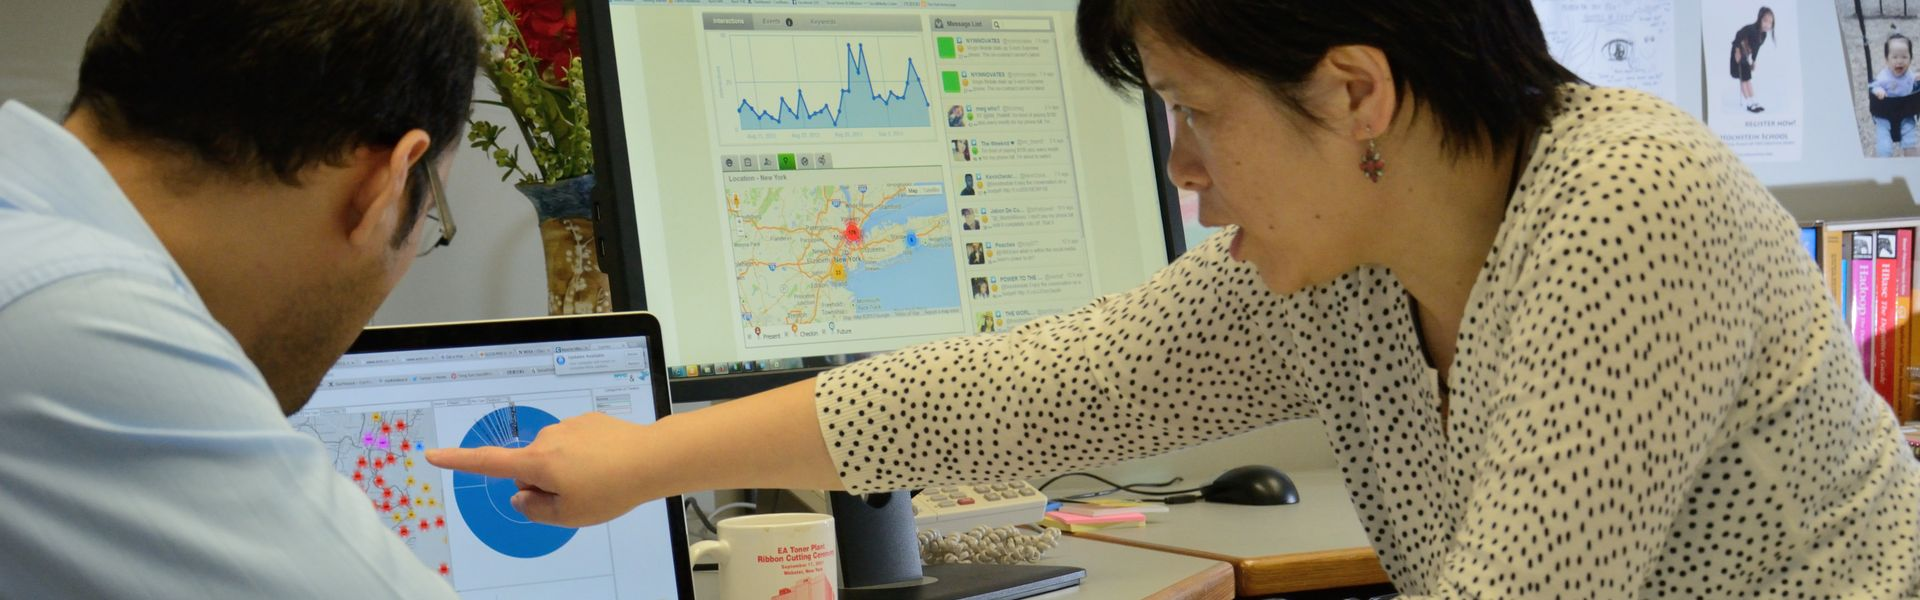 Xerox Tackles Big Data Challenge:  Social Media Analytics is Great, But What Should I Do with the Info?